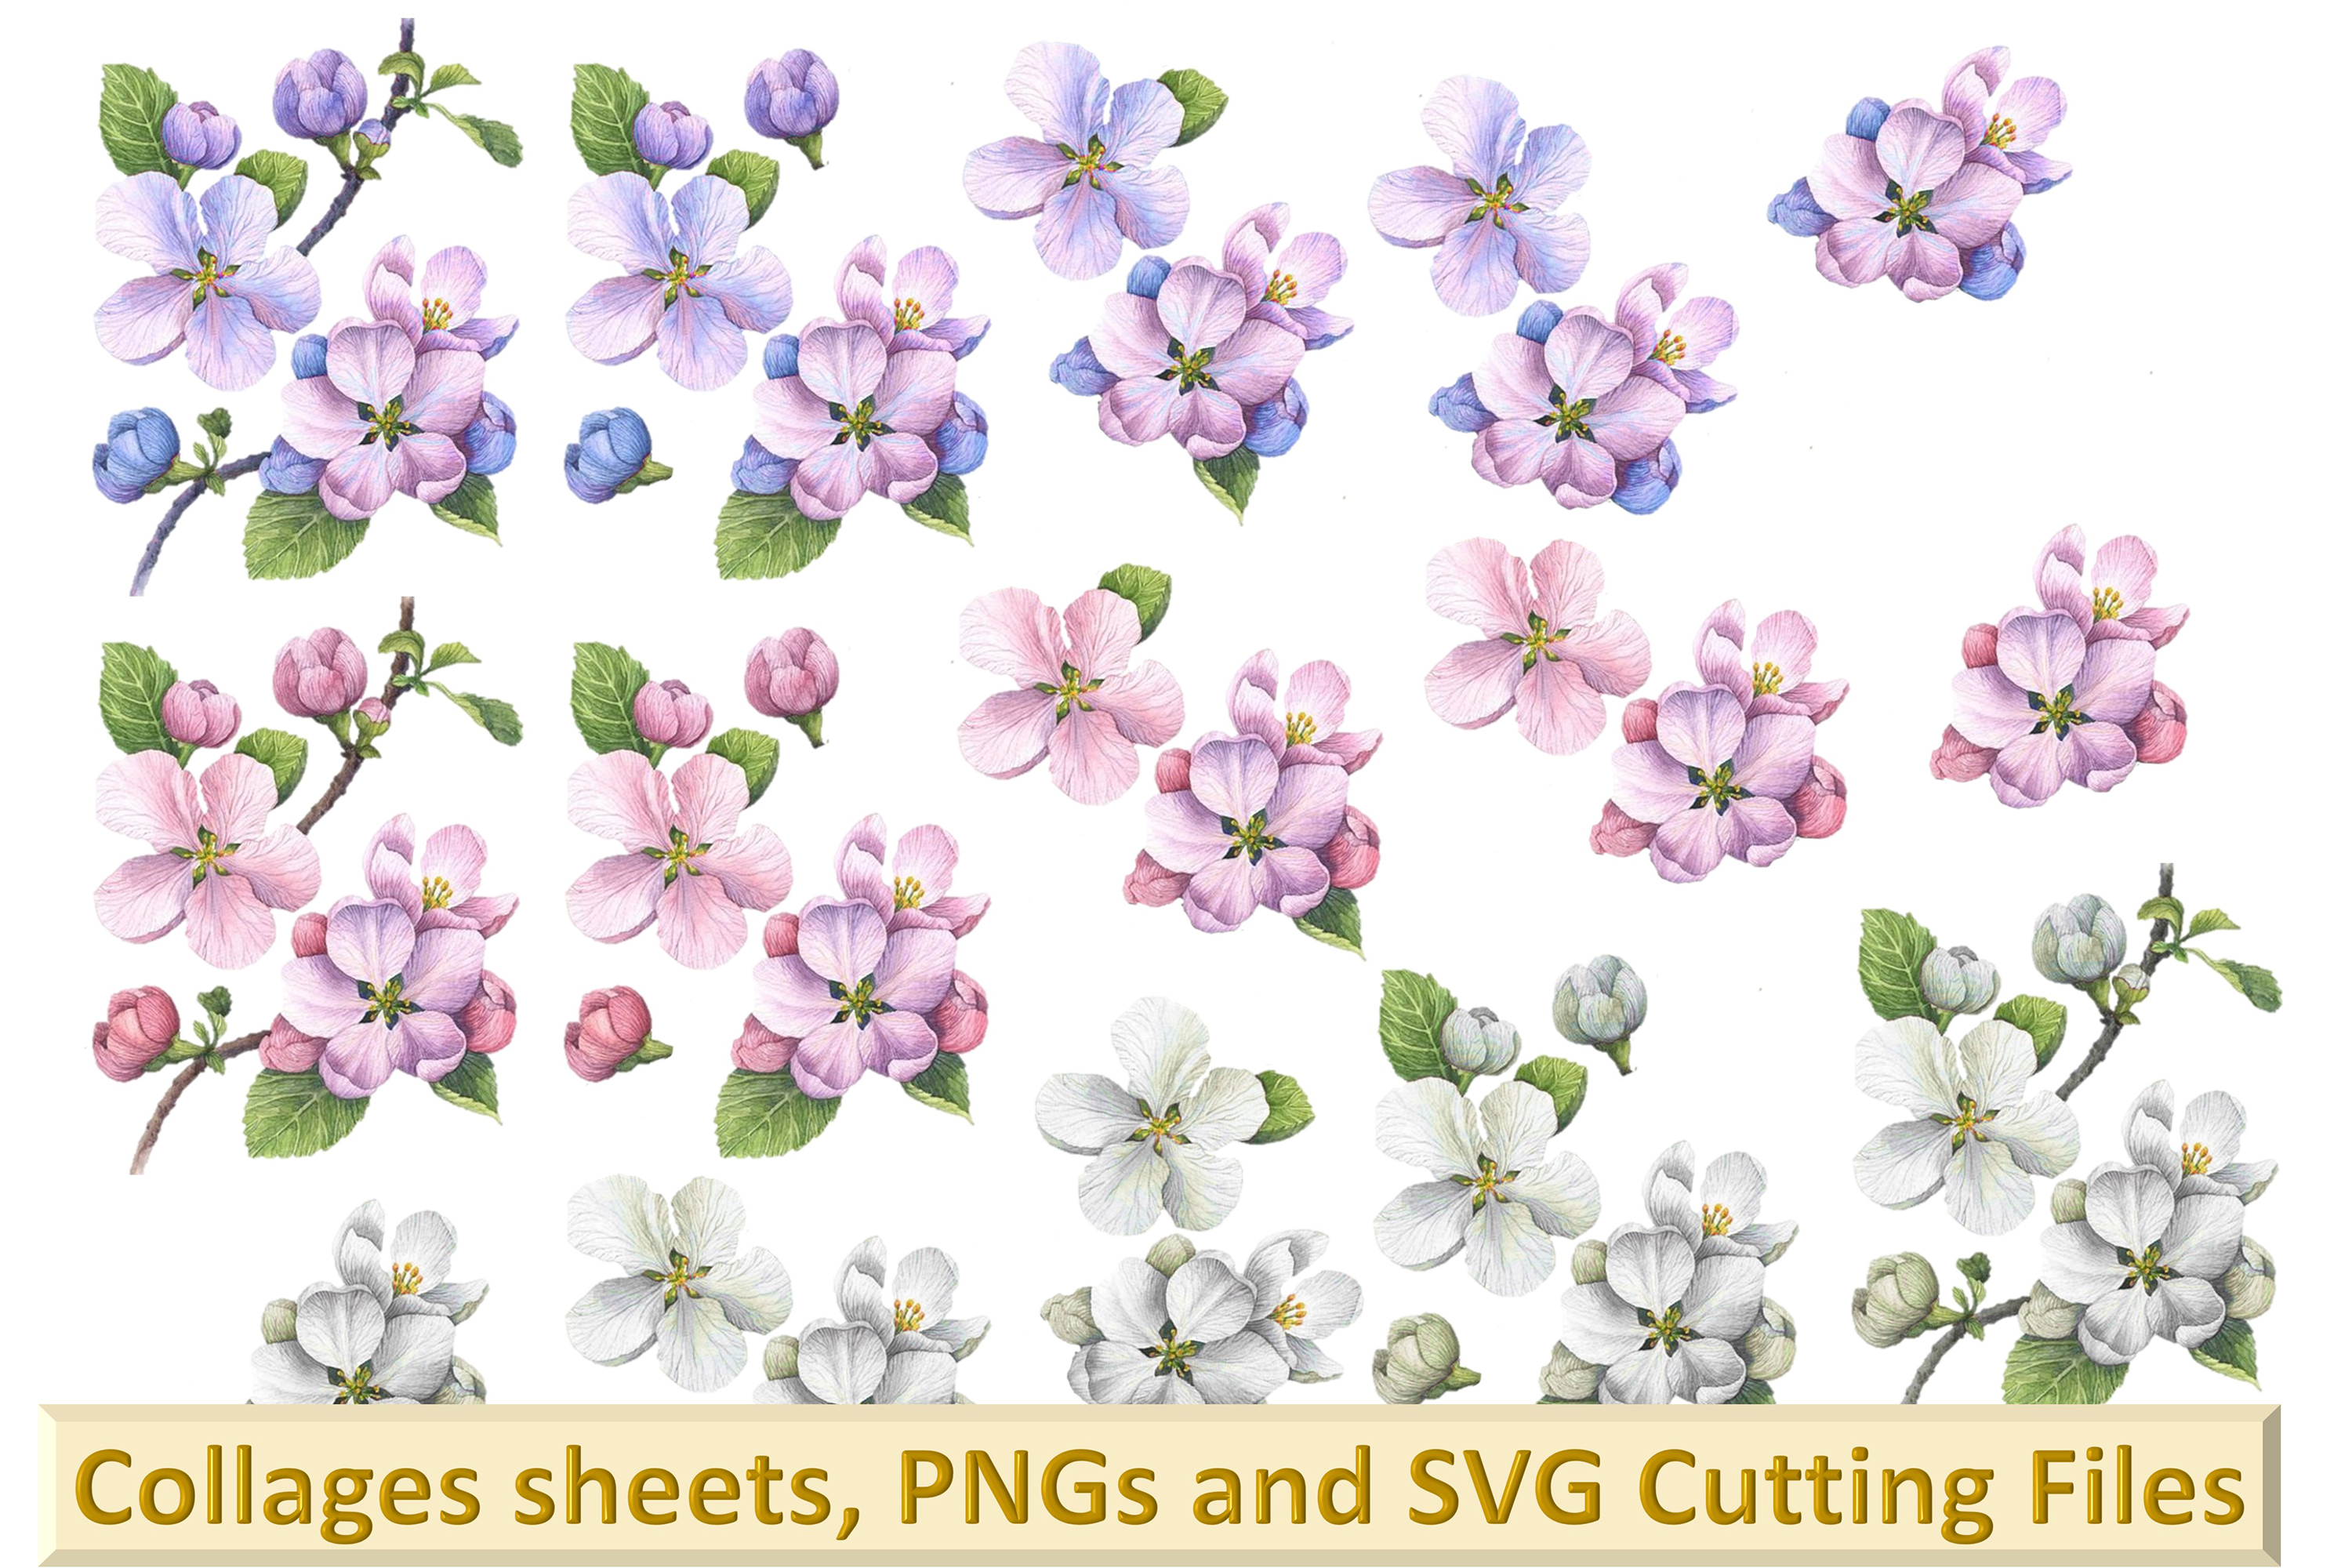 Woodland Blossom clipart bundle with card making kits CU example image 1